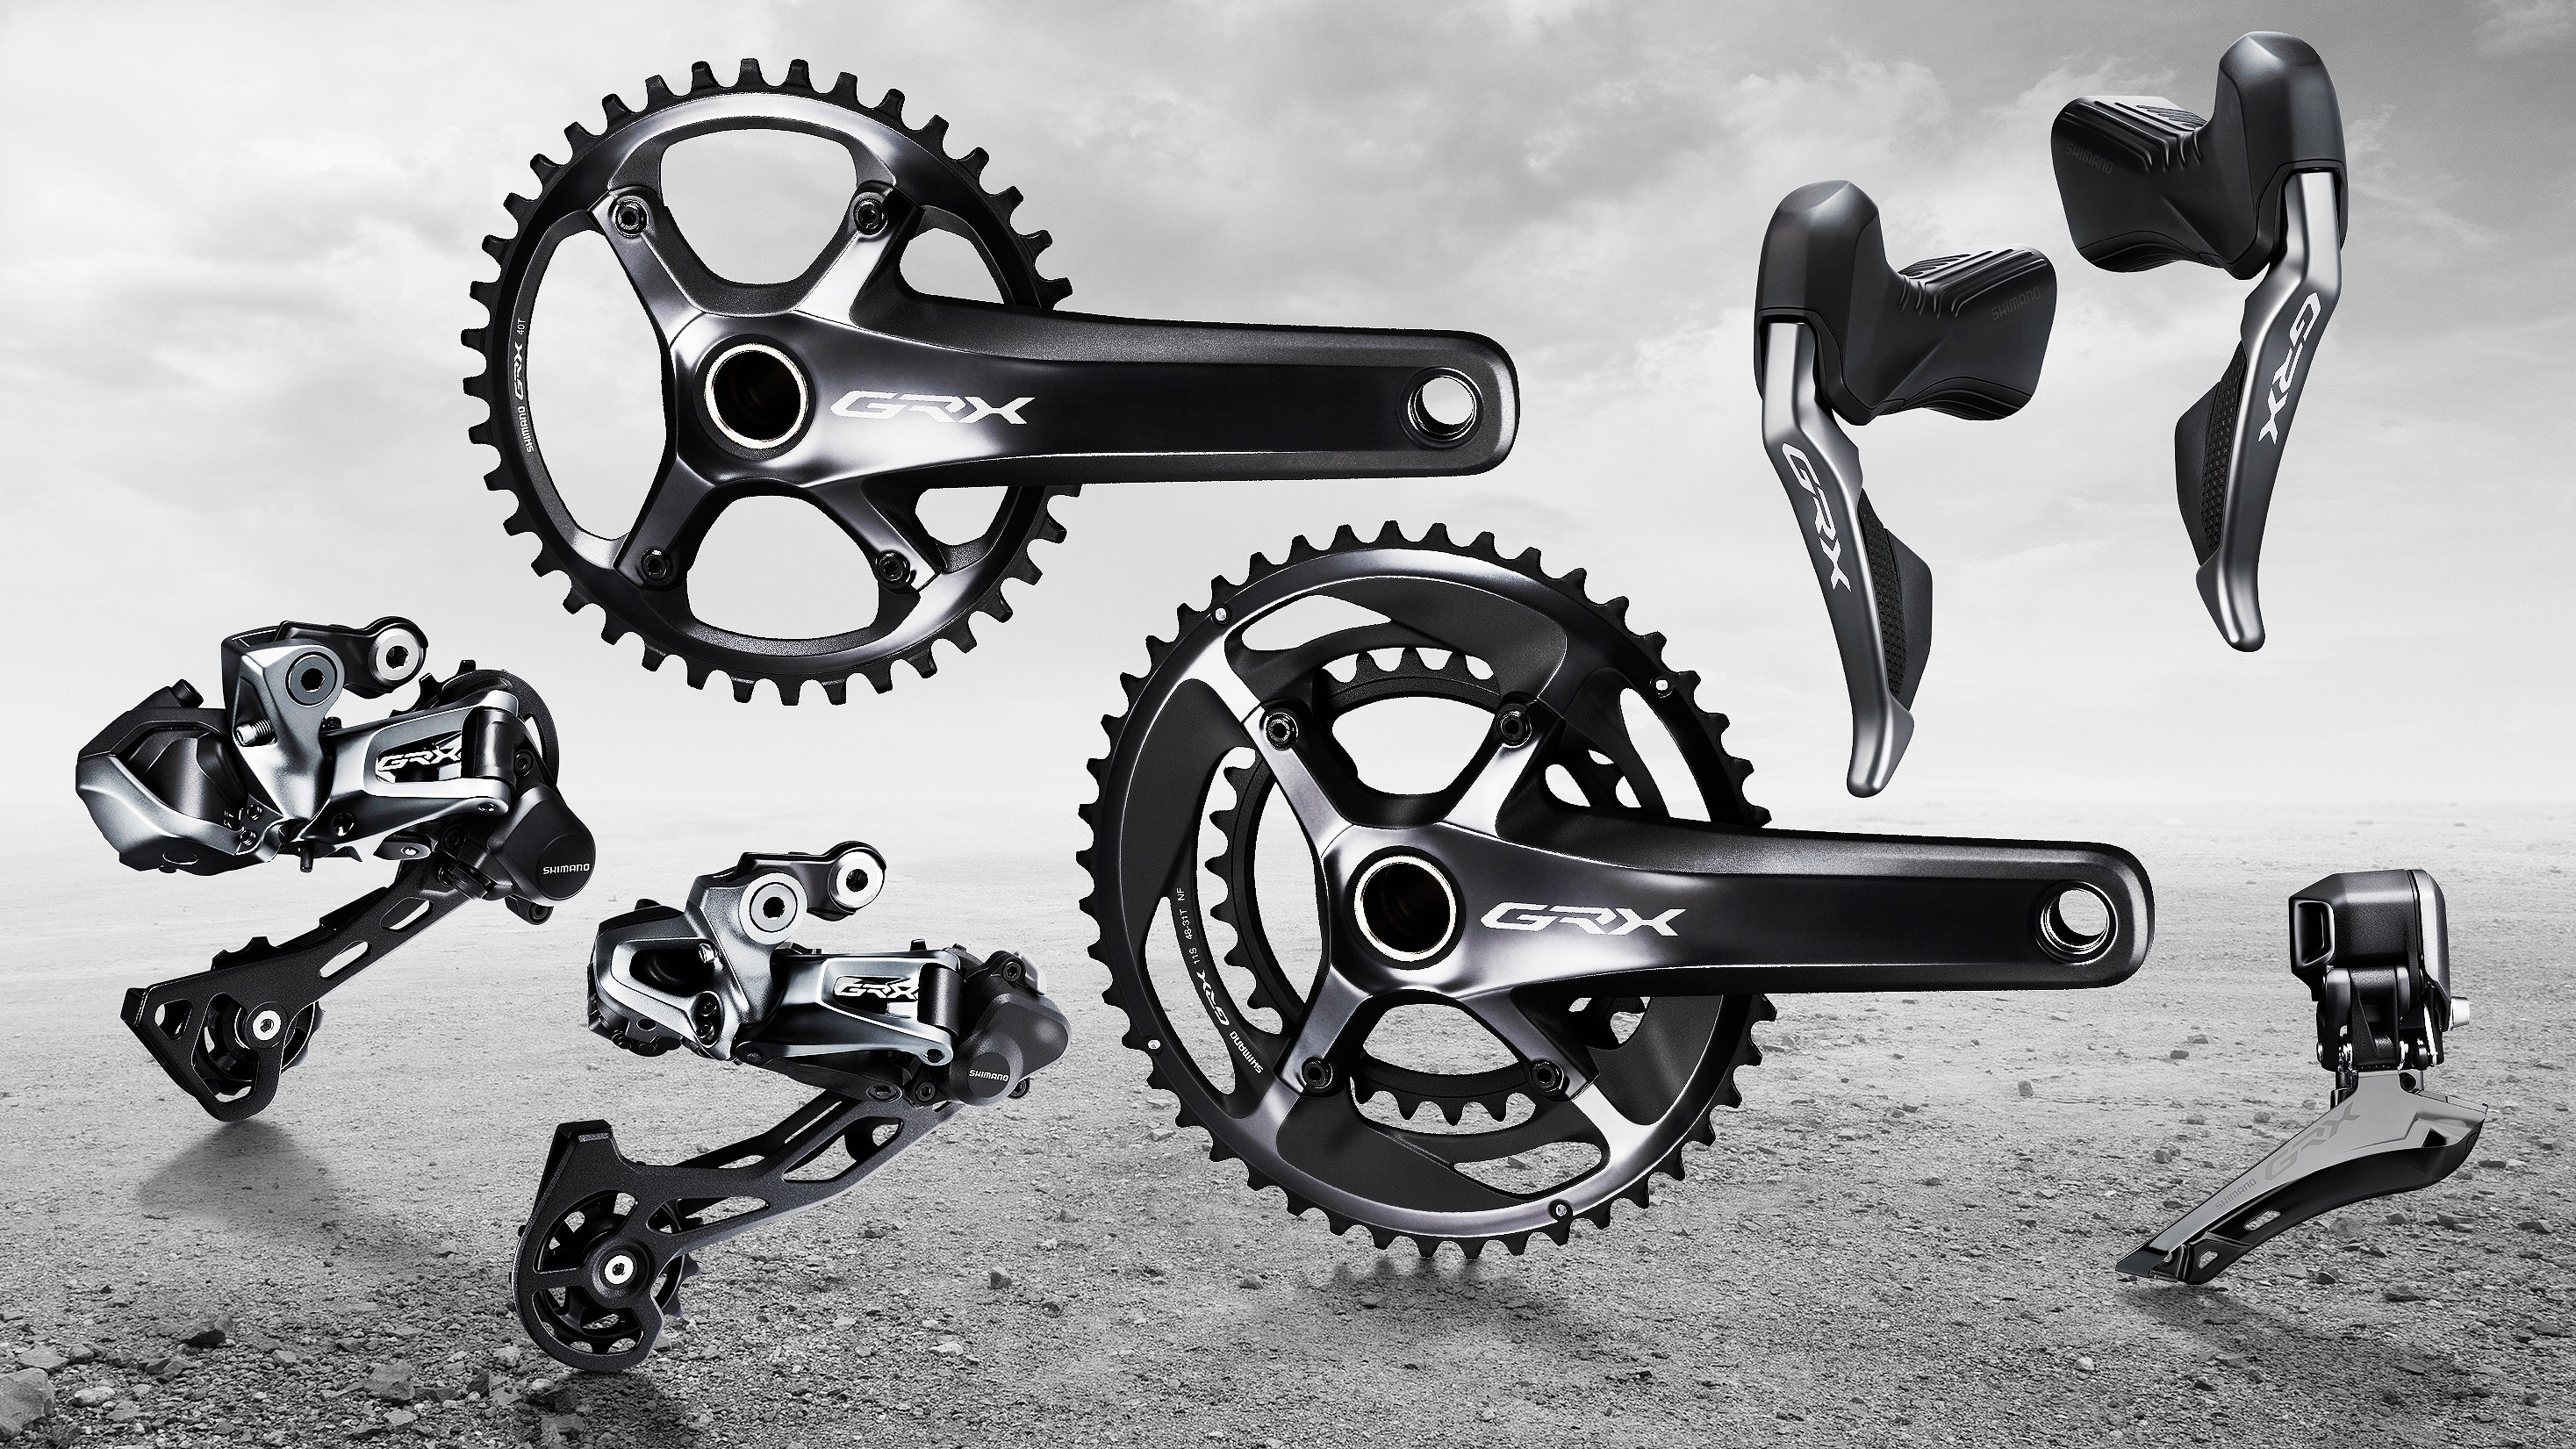 Shimano GRX Di2 levers, cranks and derailleurs